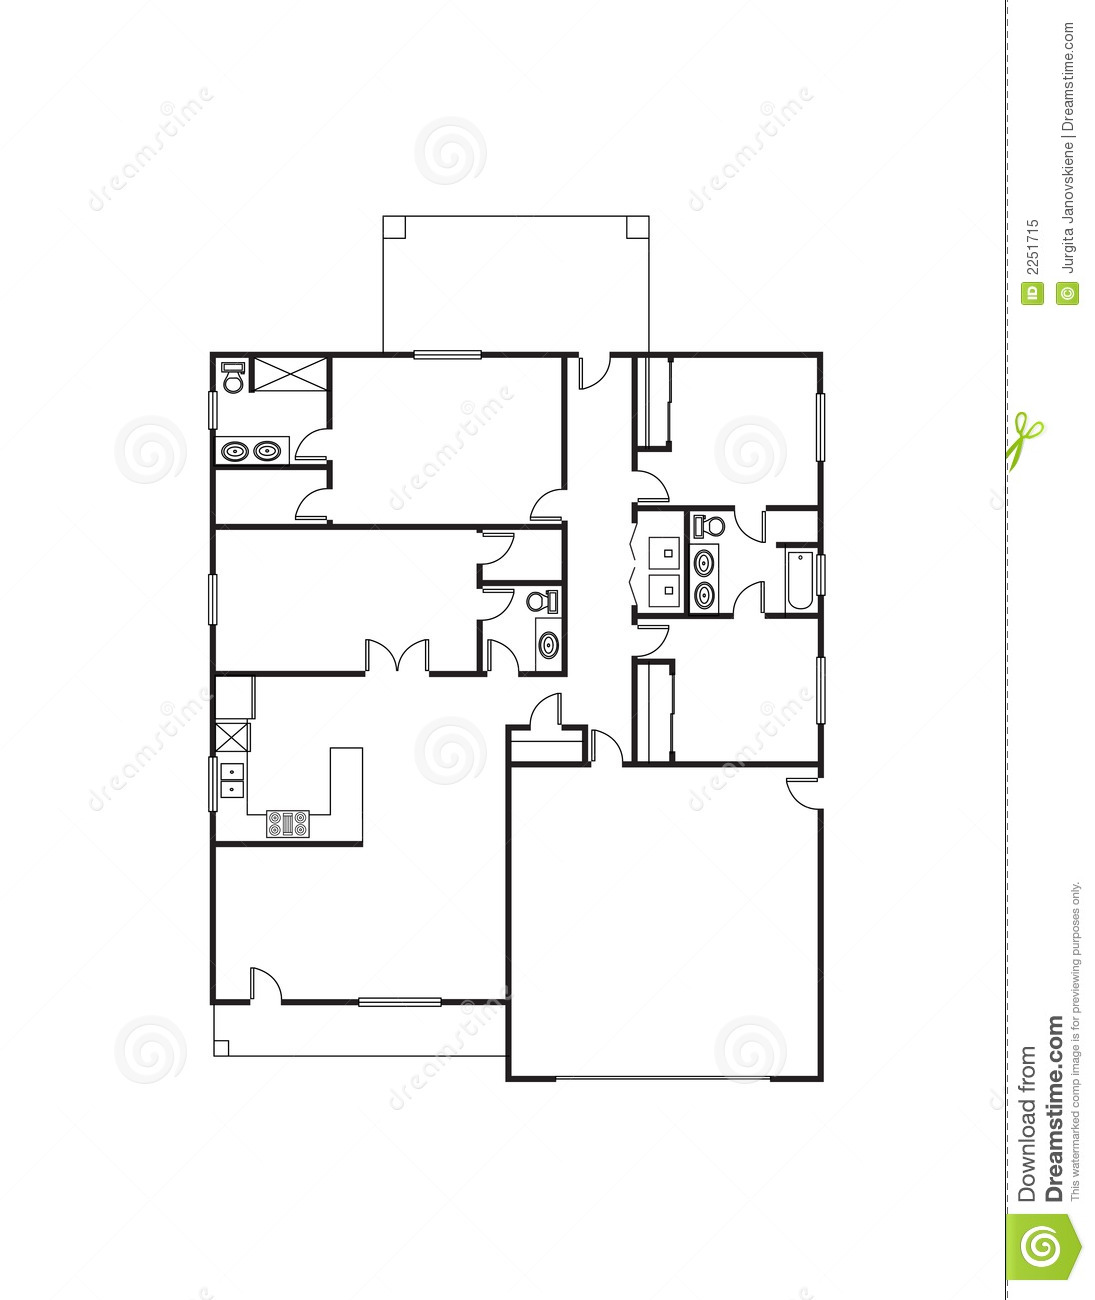 House plan royalty free stock photo image 2251715 House layout design